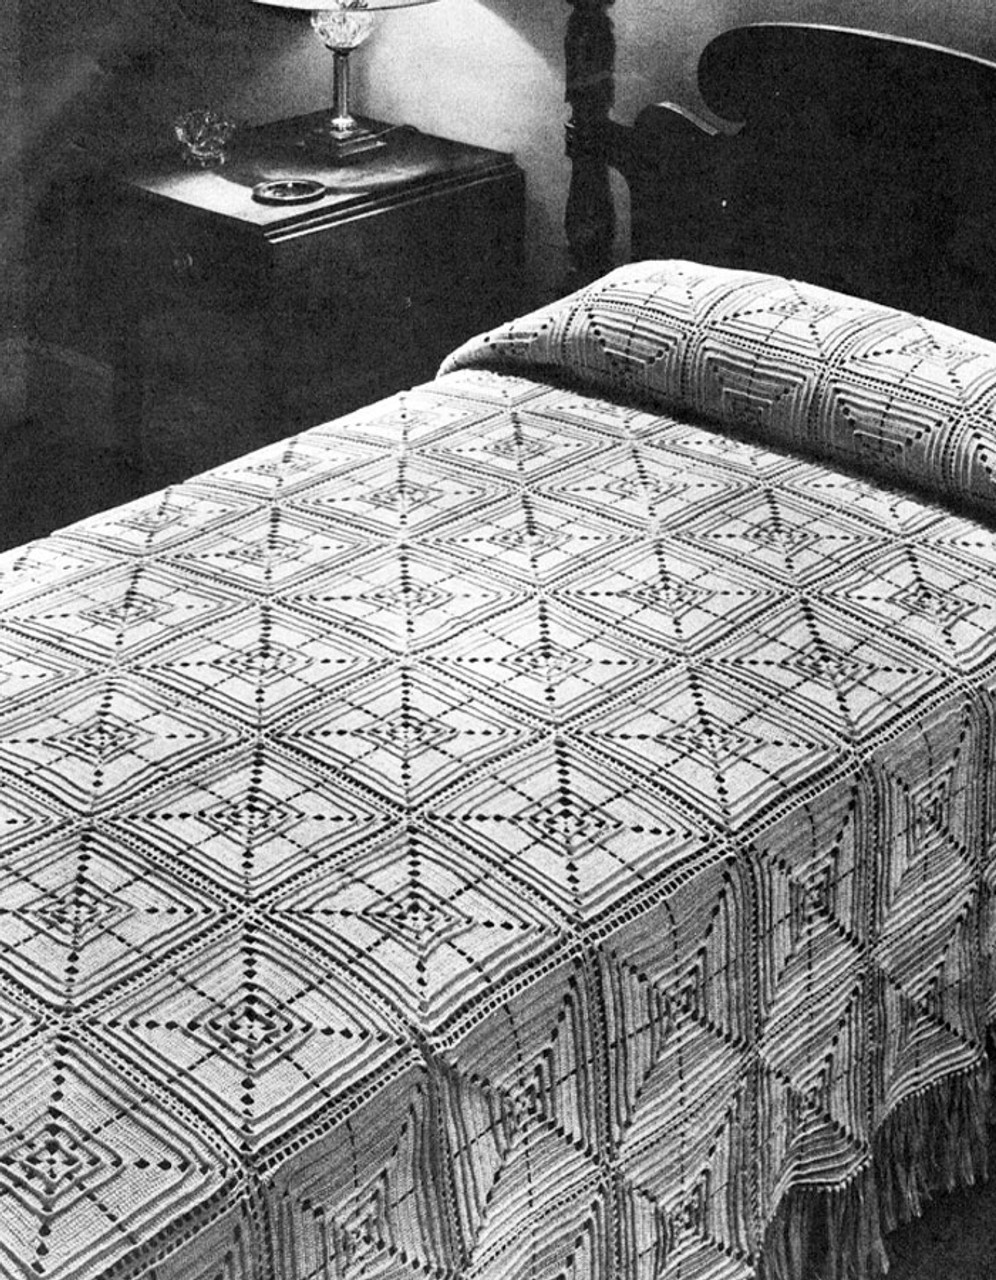 Vintage Crochet Square Pattern for Bedspread No 6131